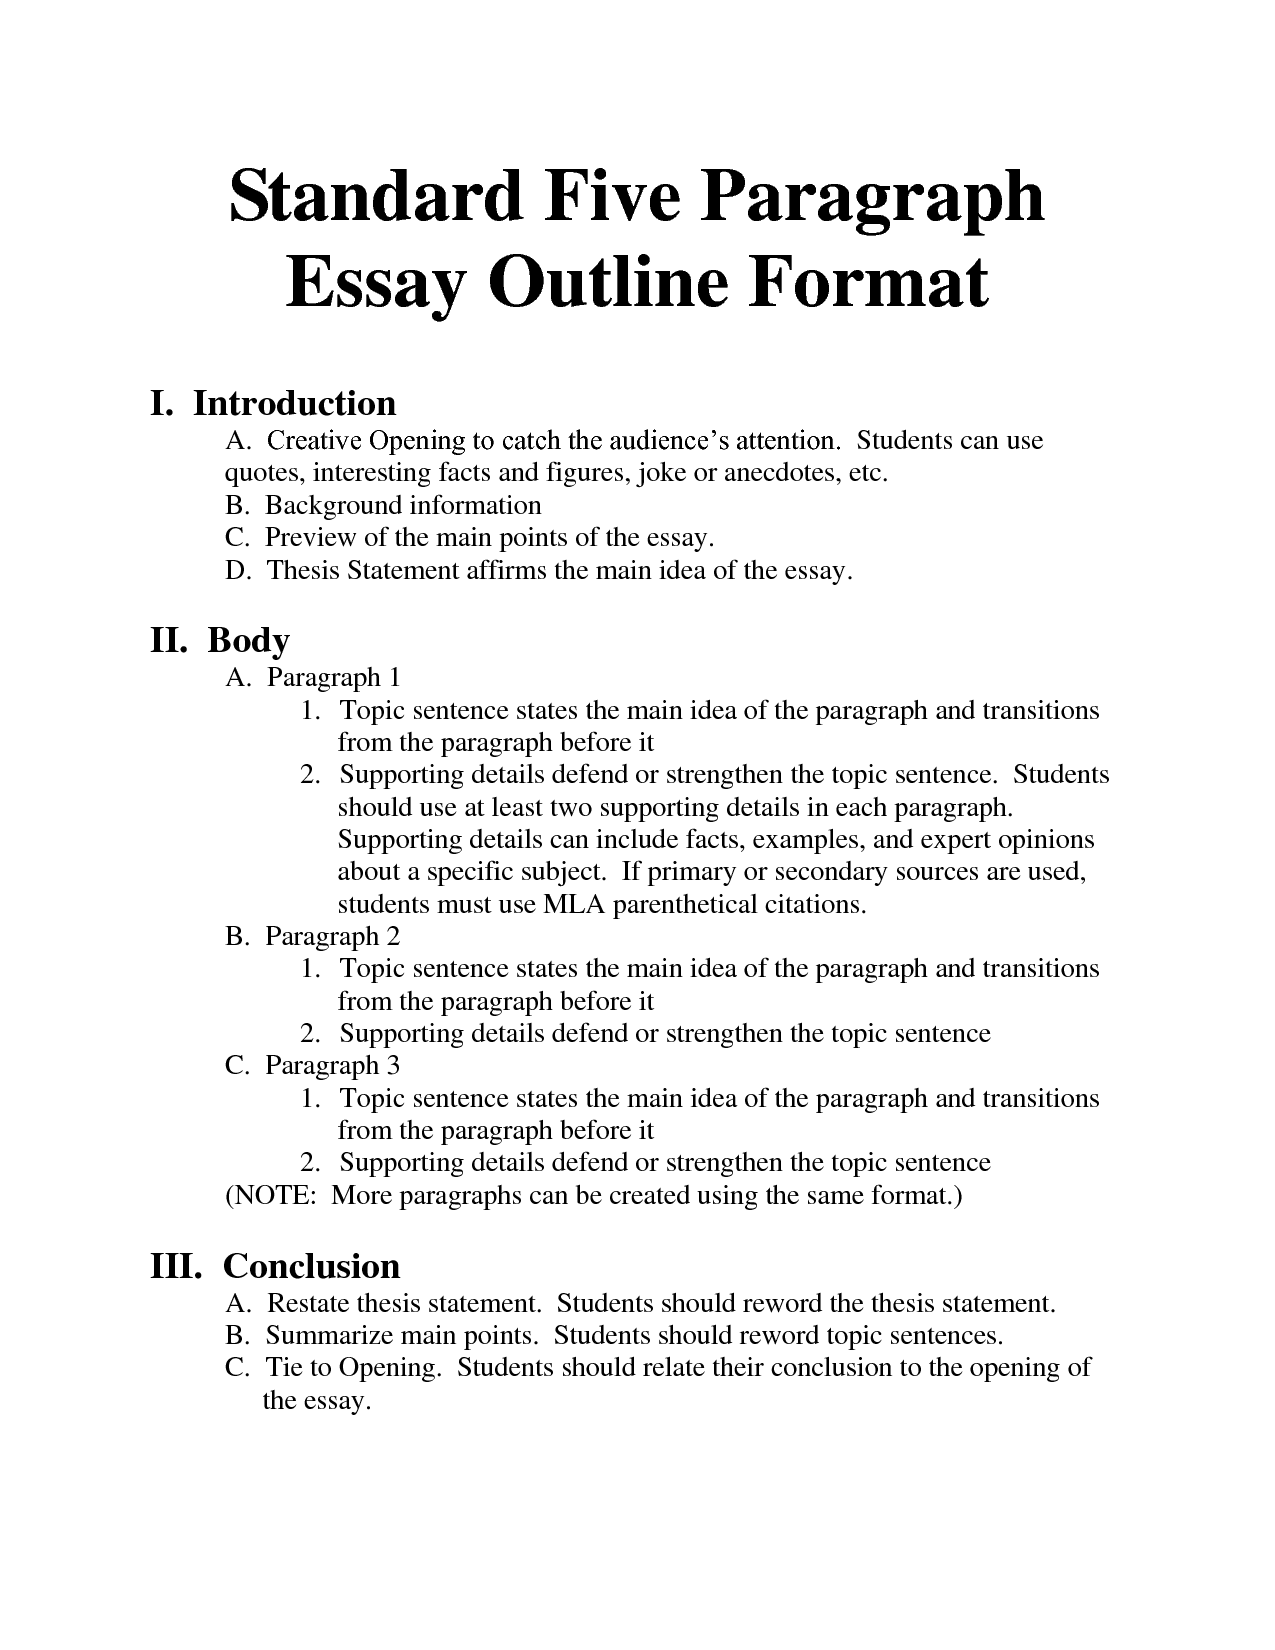 write paper in mla format The modern language association (mla) is an organization responsible for developing mla format, often called mla style mla format was developed as a means for researchers, students, and scholars in the literature and languages fields to use a uniform way to format their papers and assignments.